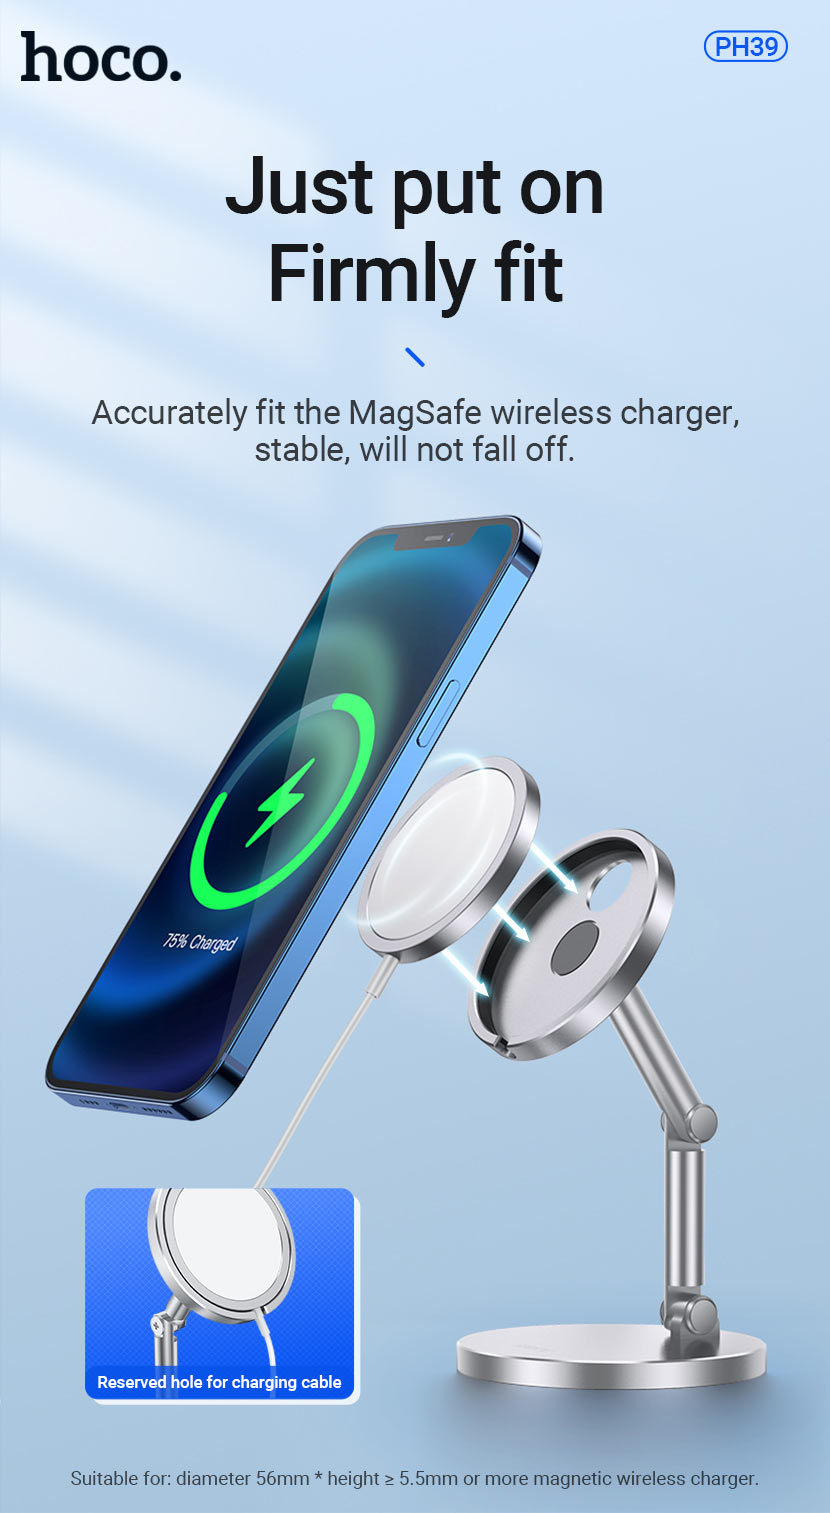 hoco news ph39 daring magnetic desktop stand with wireless charging firmly en